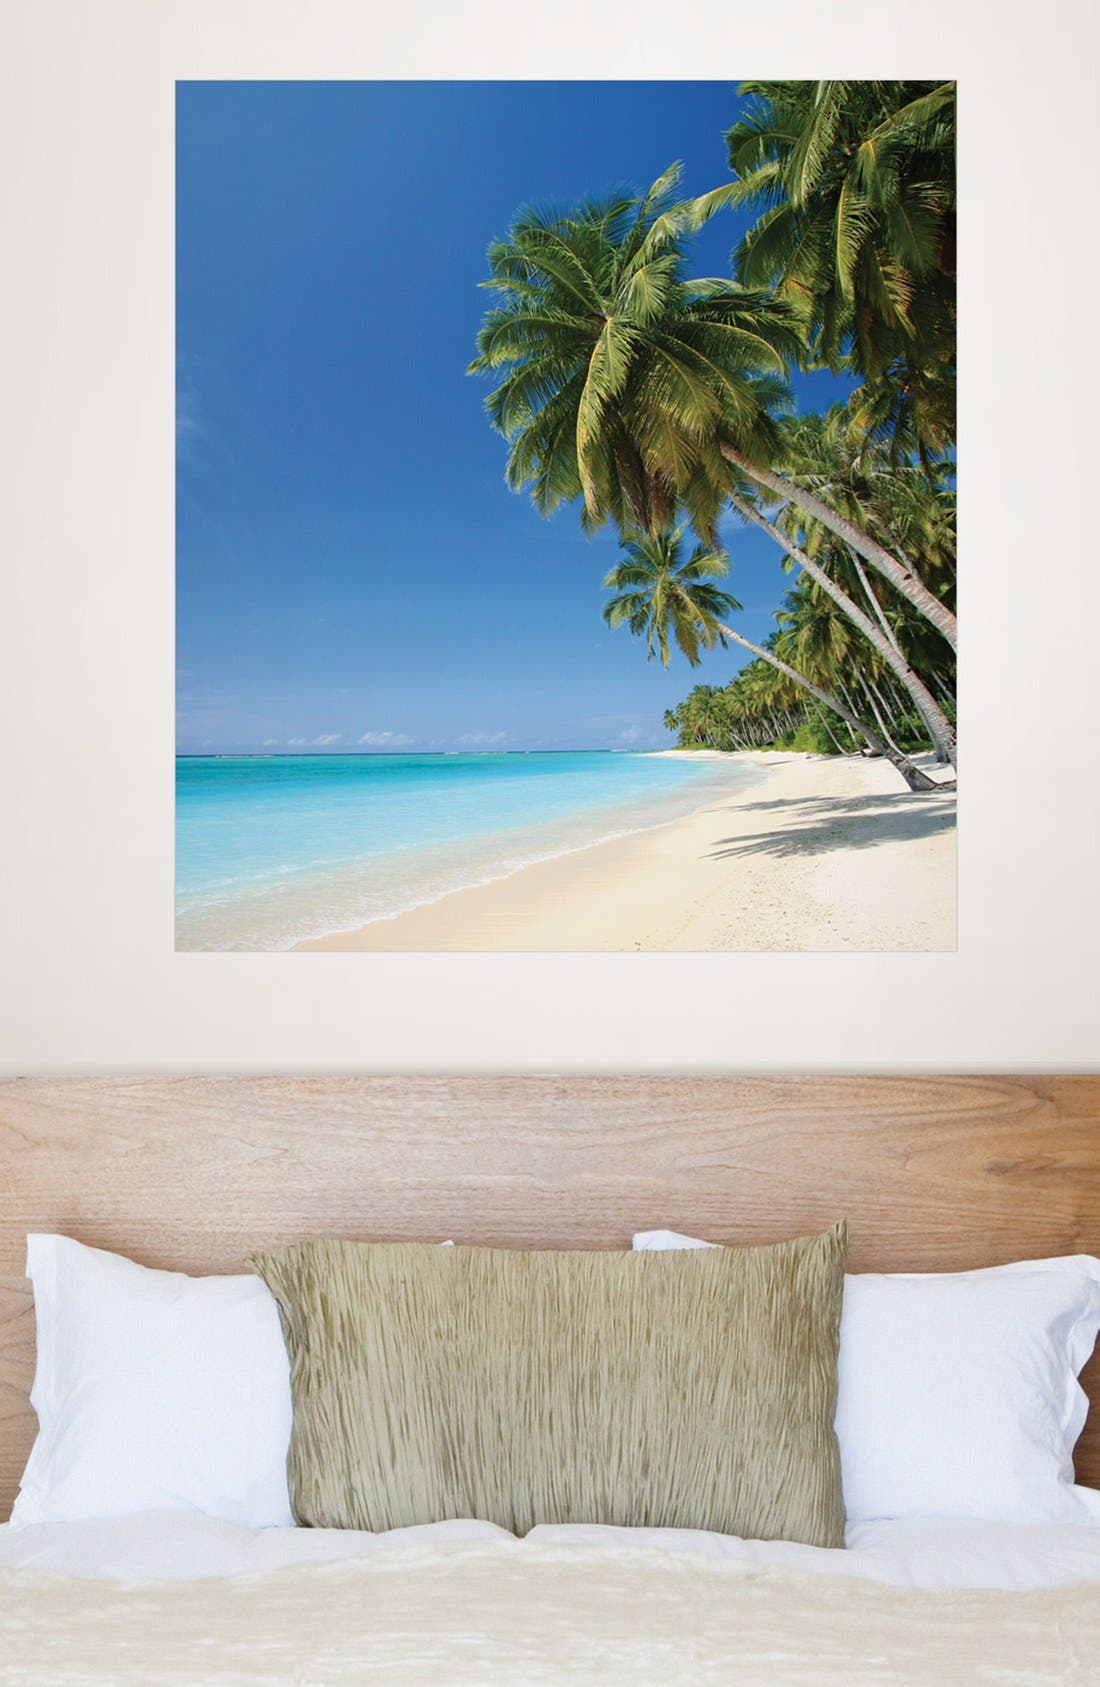 Alternate Image 1 Selected - Wallpops Tropical Wall Art